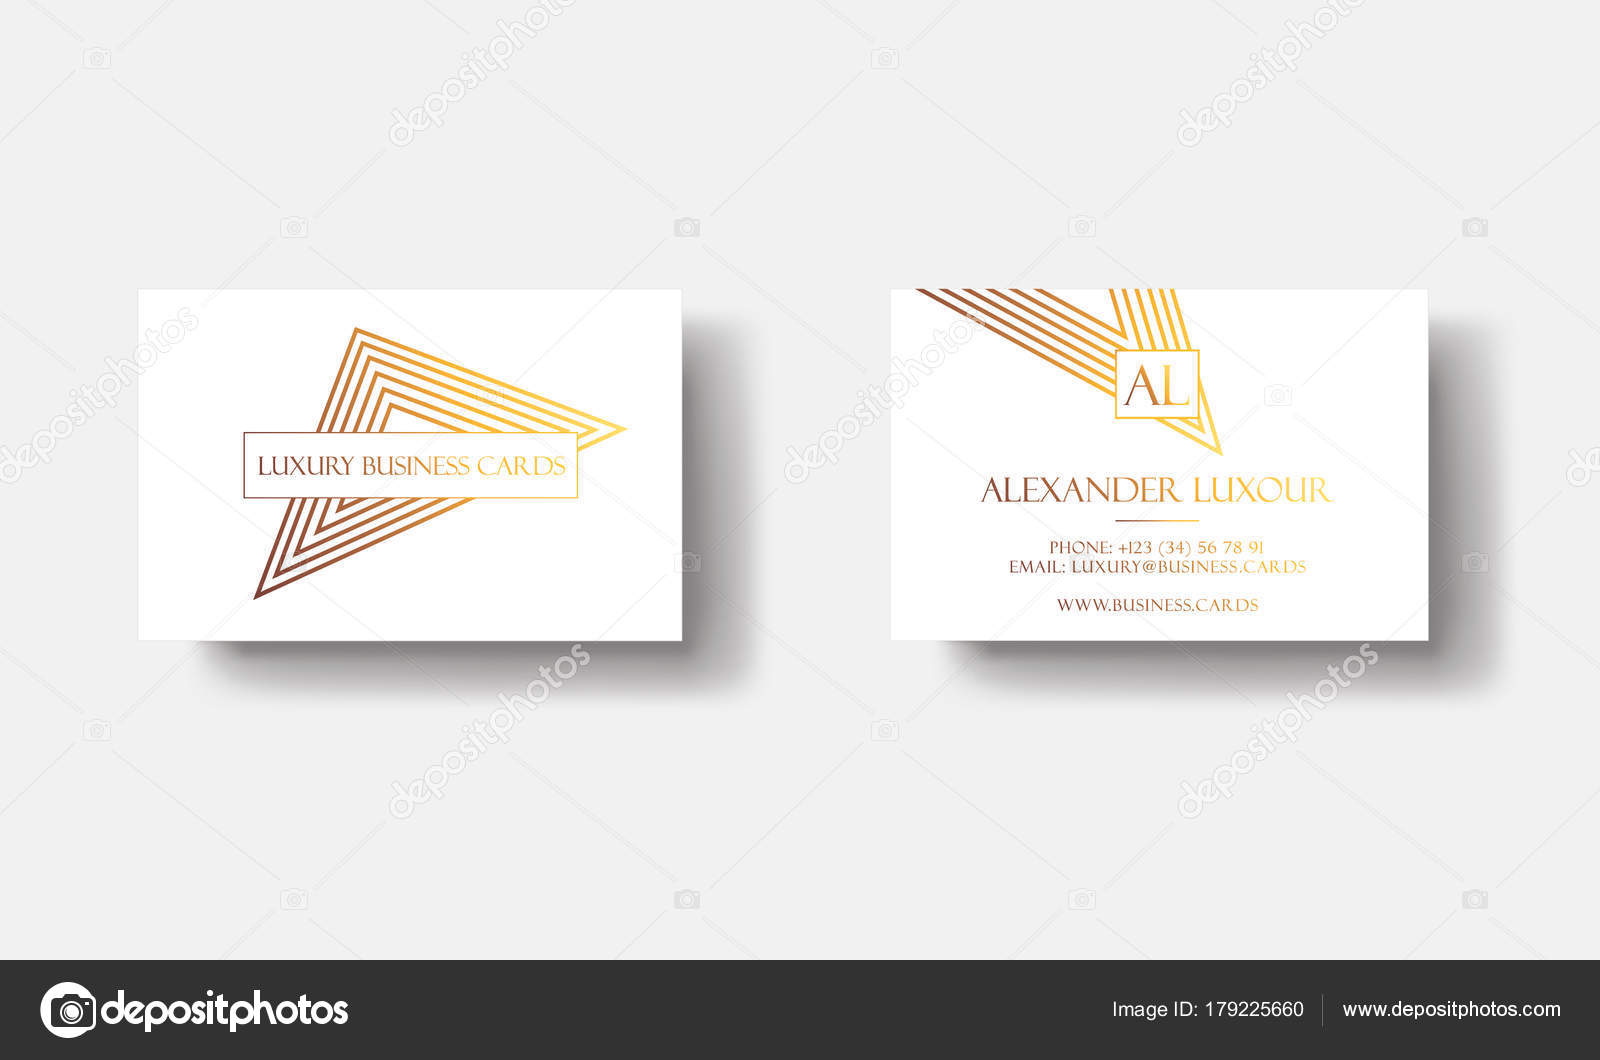 White gold luxury business cards for vip event elegant greeting white gold luxury business cards for vip event elegant greeting card with golden triangular geometric m4hsunfo